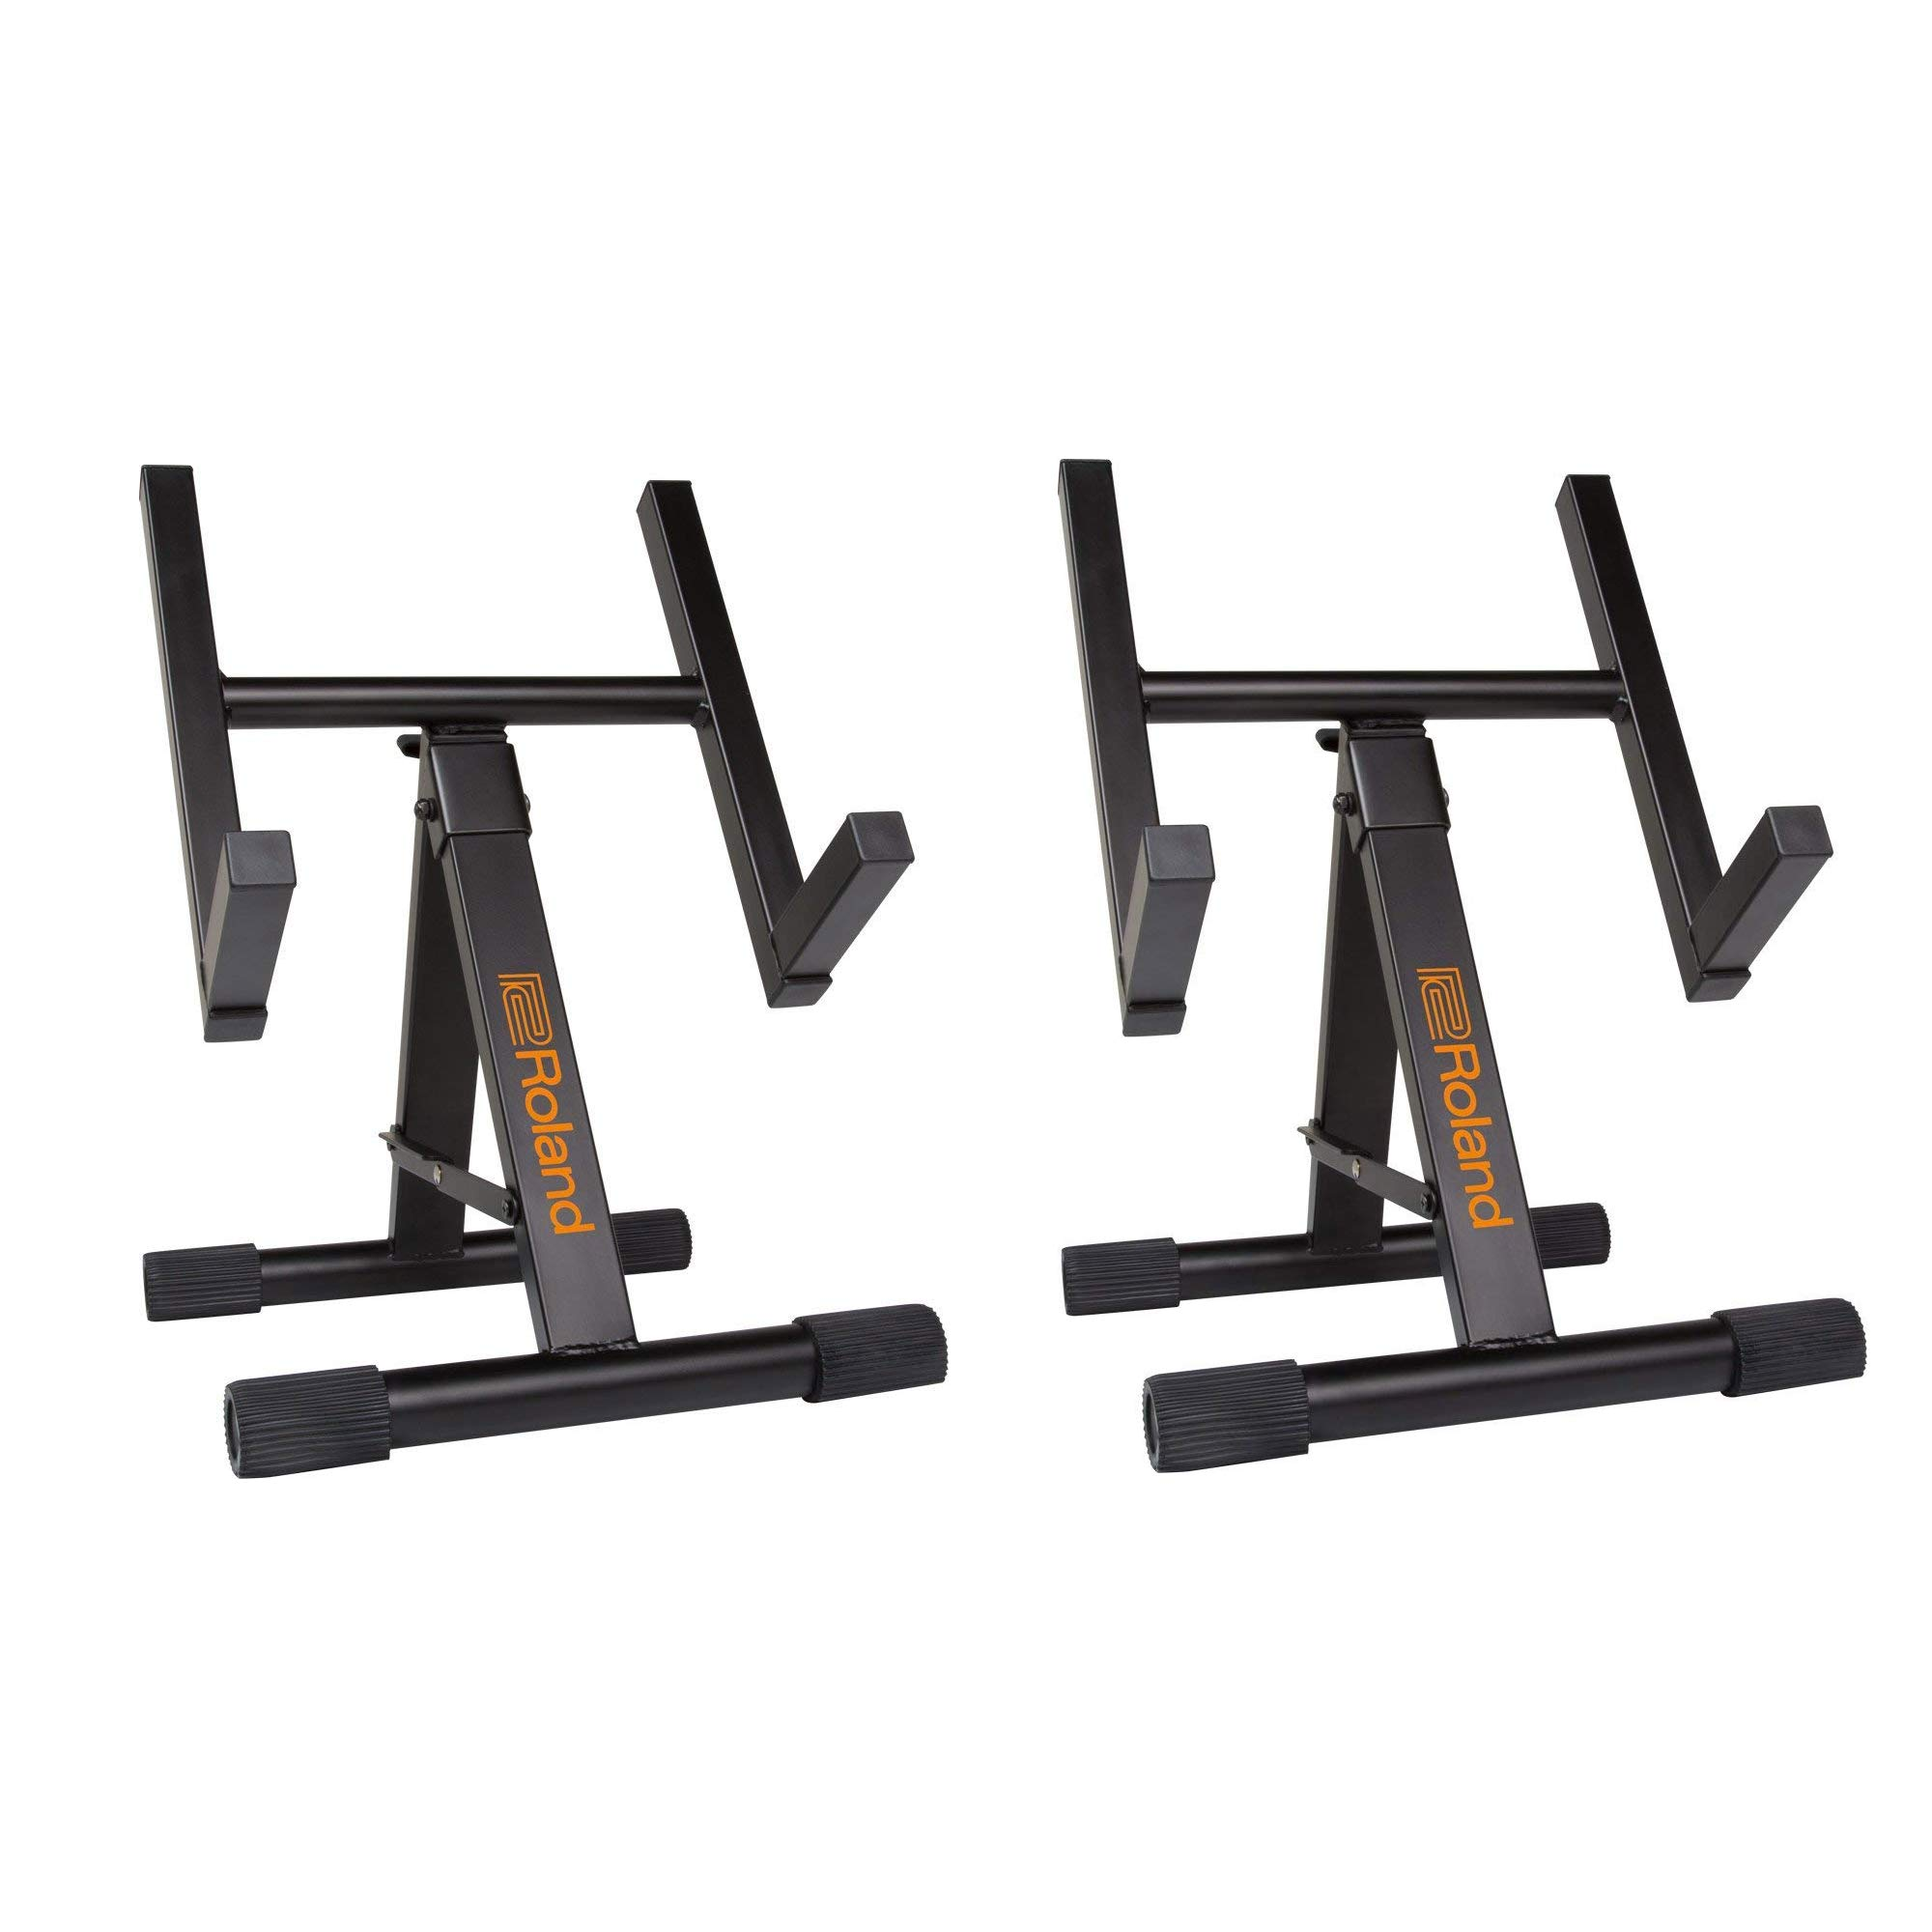 Roland RAS-S01 Amp Stand 2 Pack Bundle by Roland.